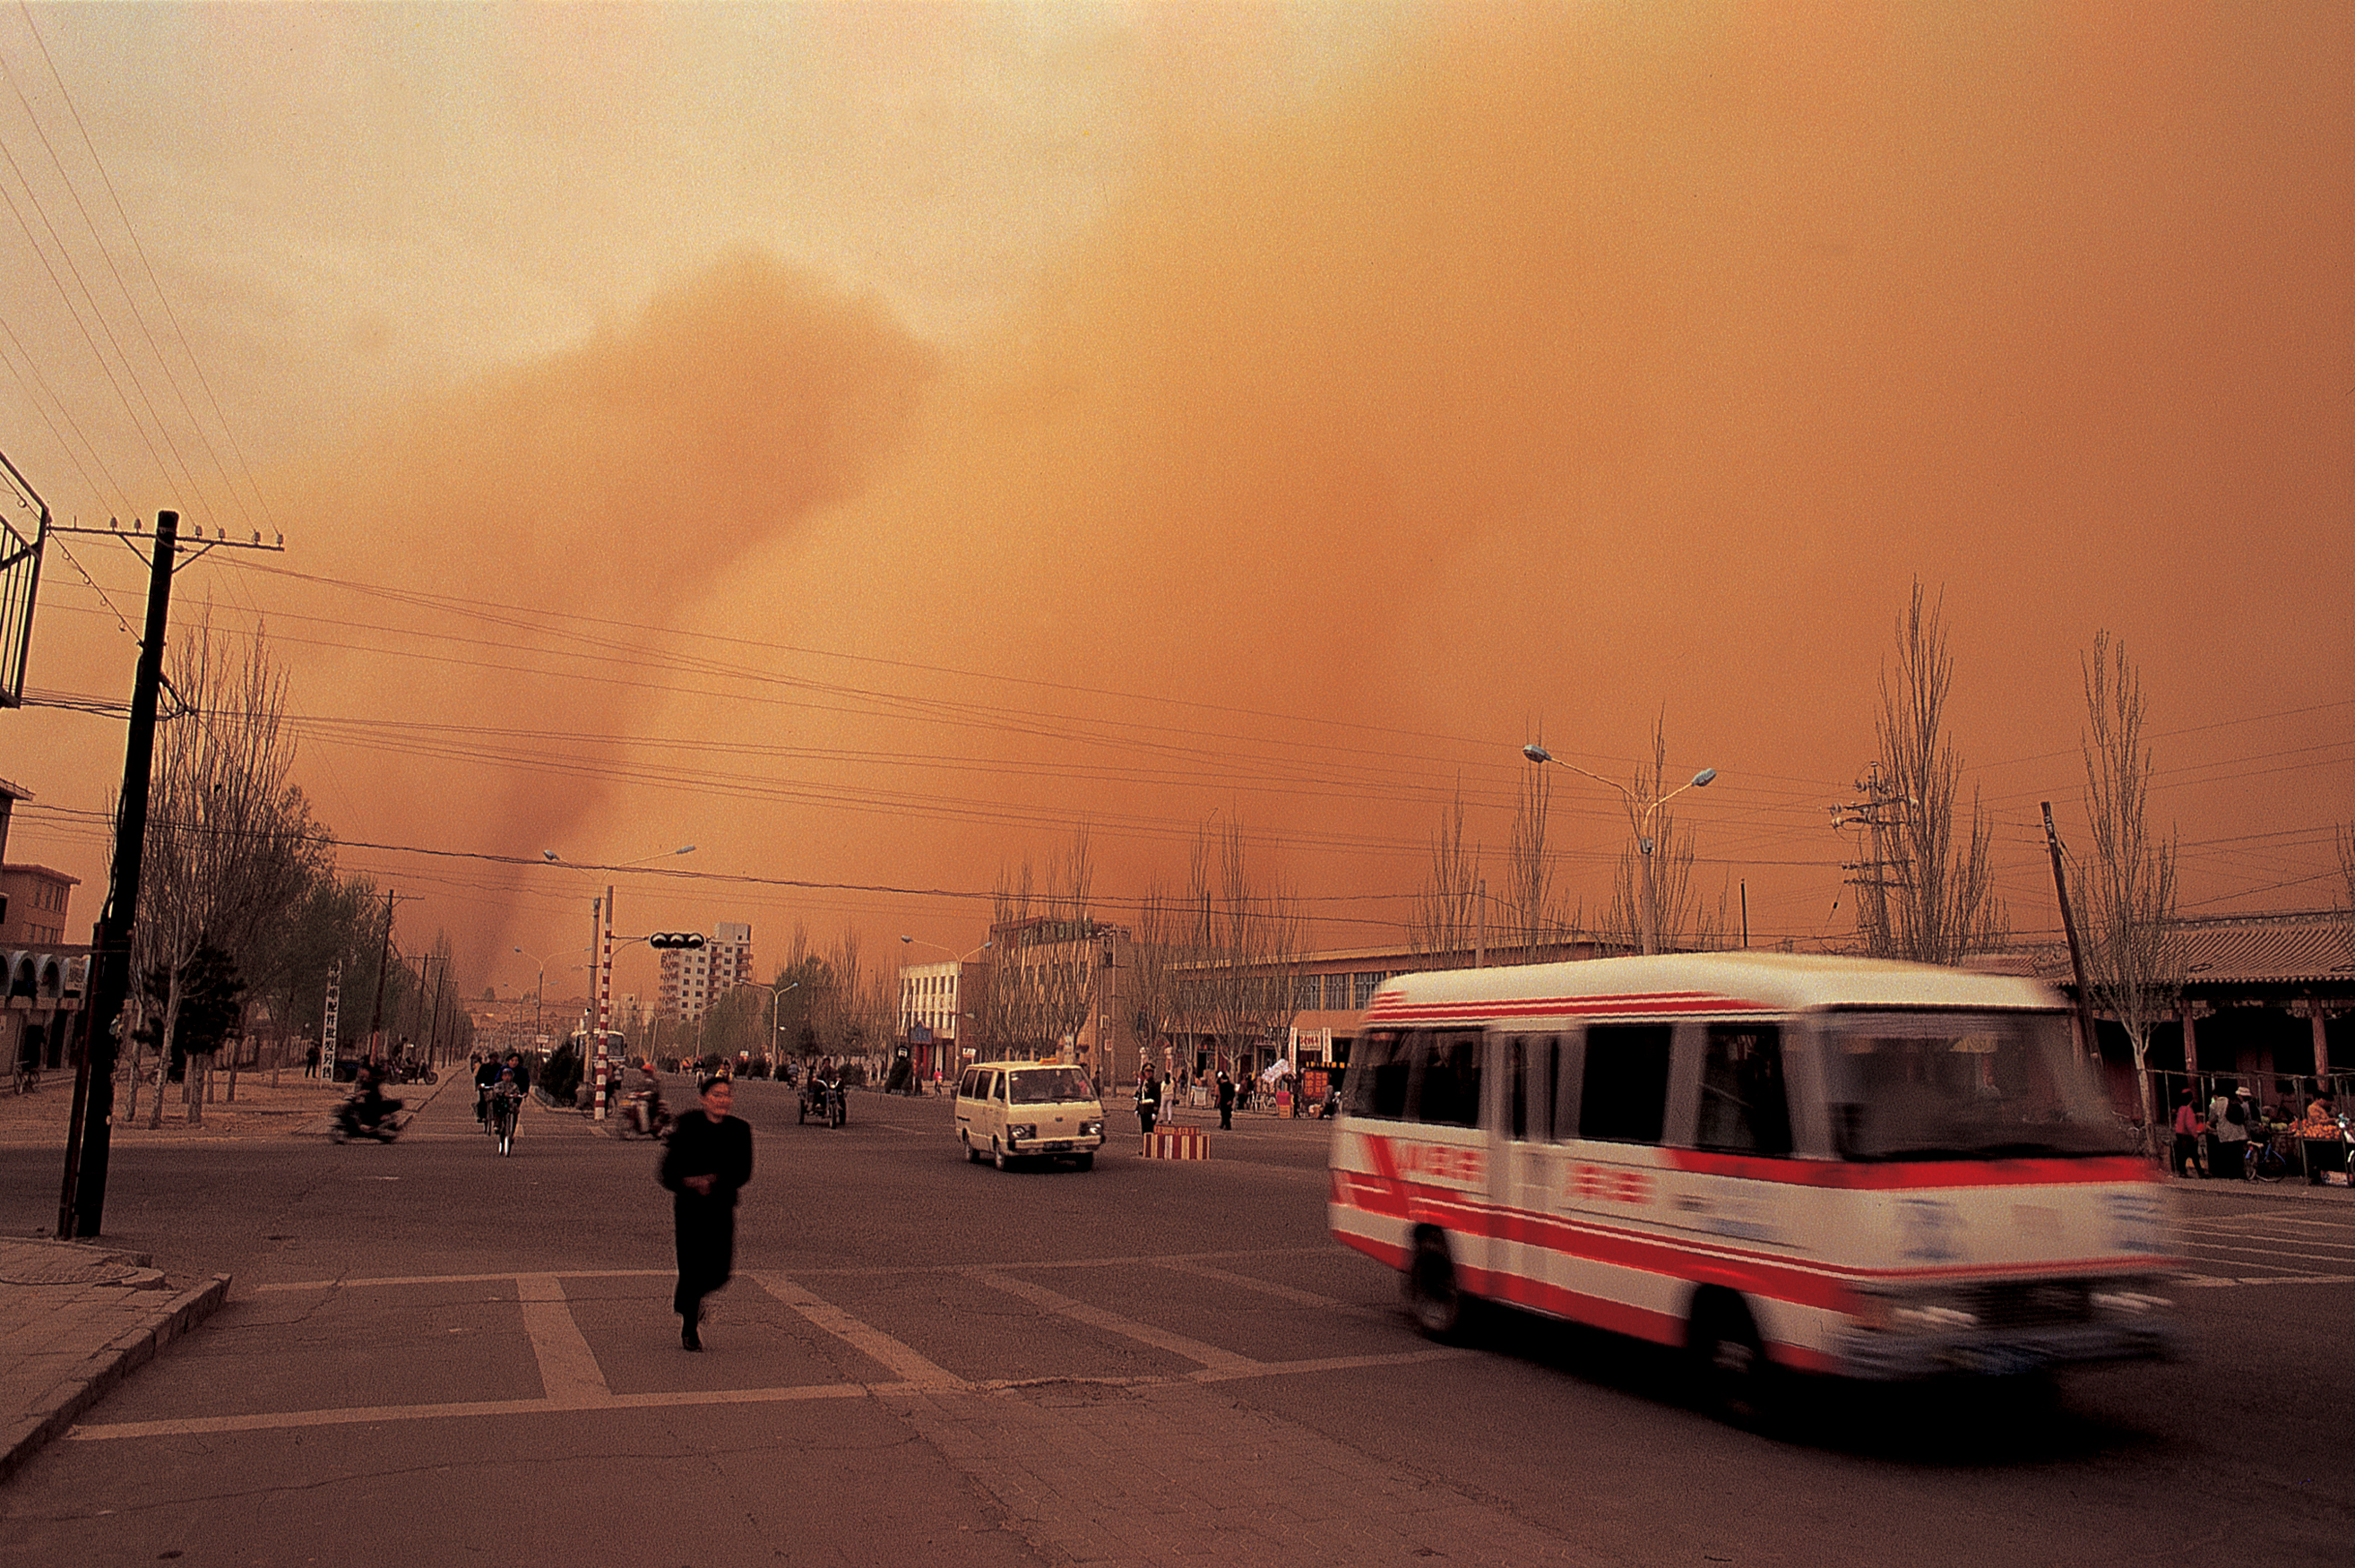 Drought and deforestation contribute to sandstorms blowing into towns from the Gobi Desert in China, causing respiratory problems. Photo by Se Hasibagen for AusAID